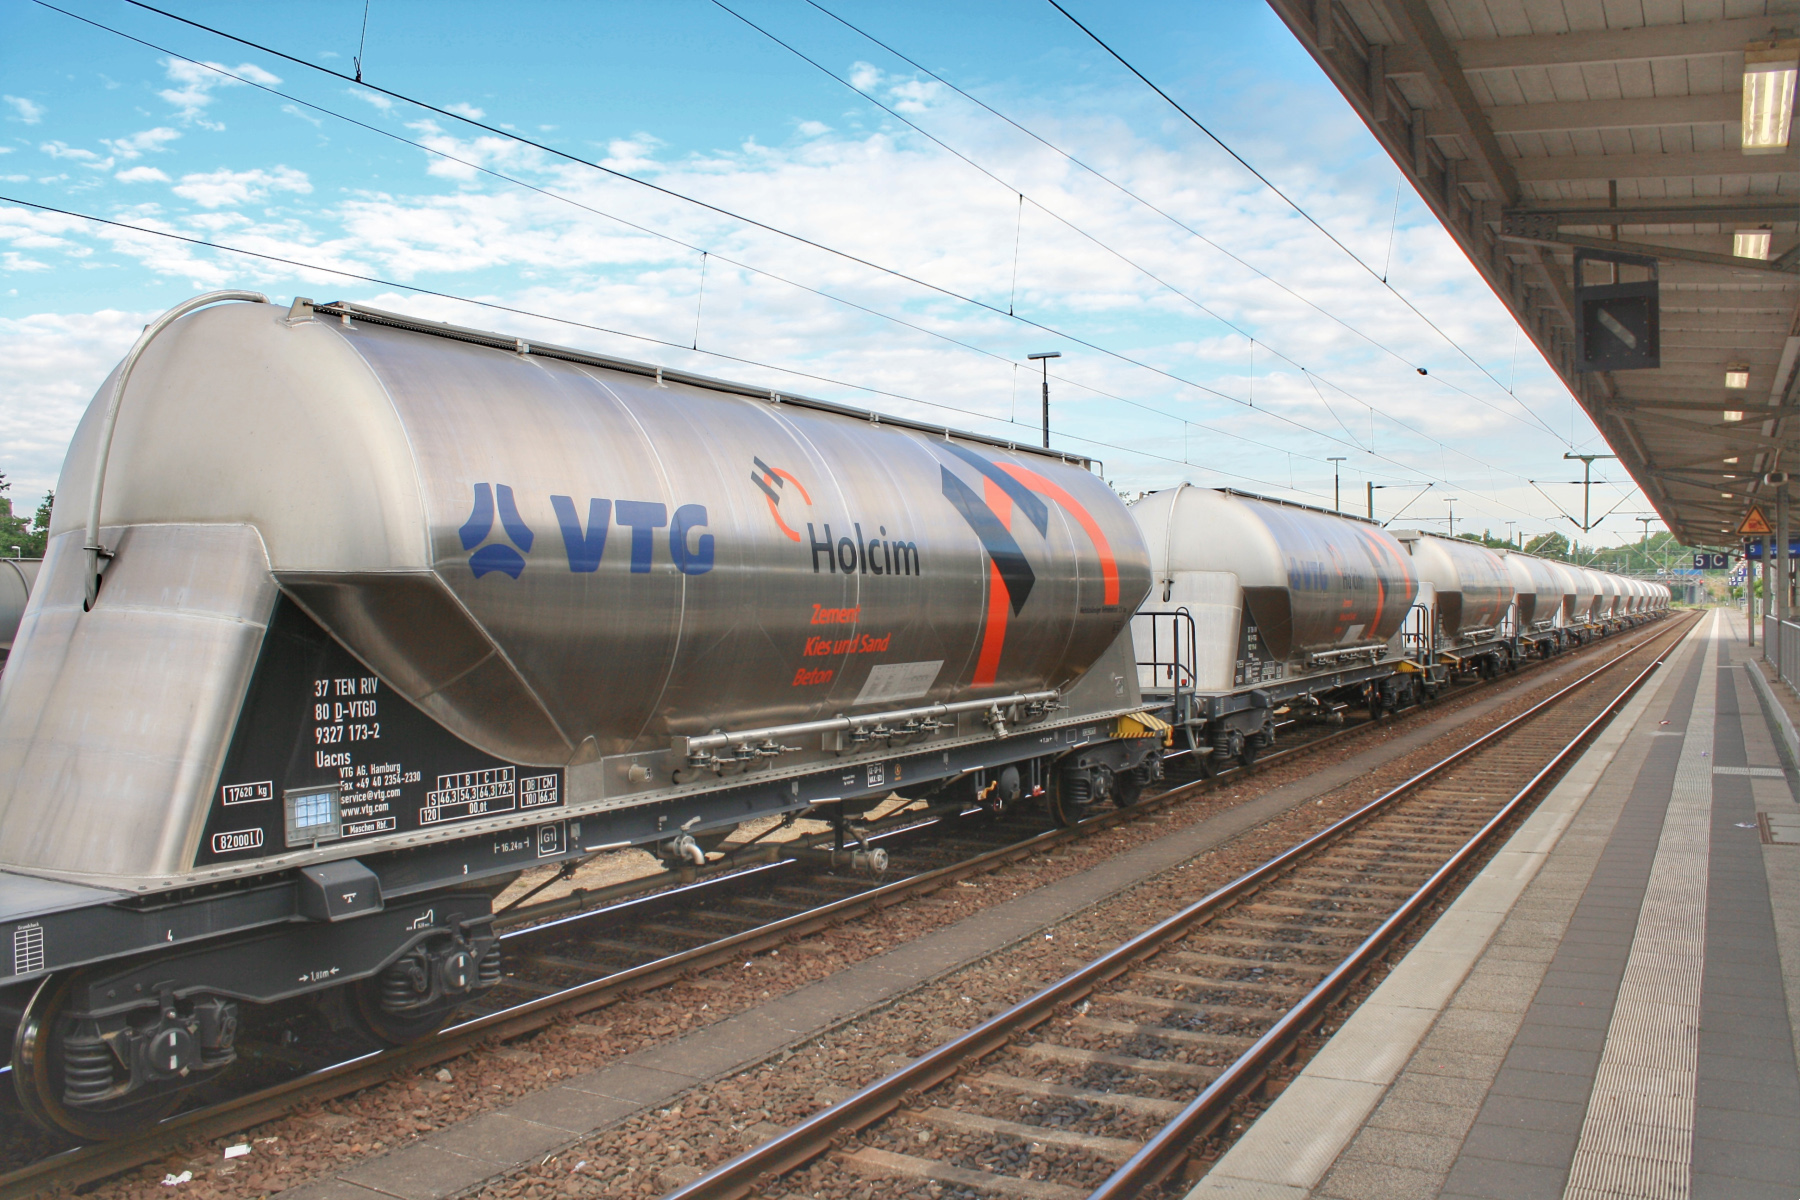 Holcim cement tanks train car owned by Swiss billionaire Thomas Schmidheiny